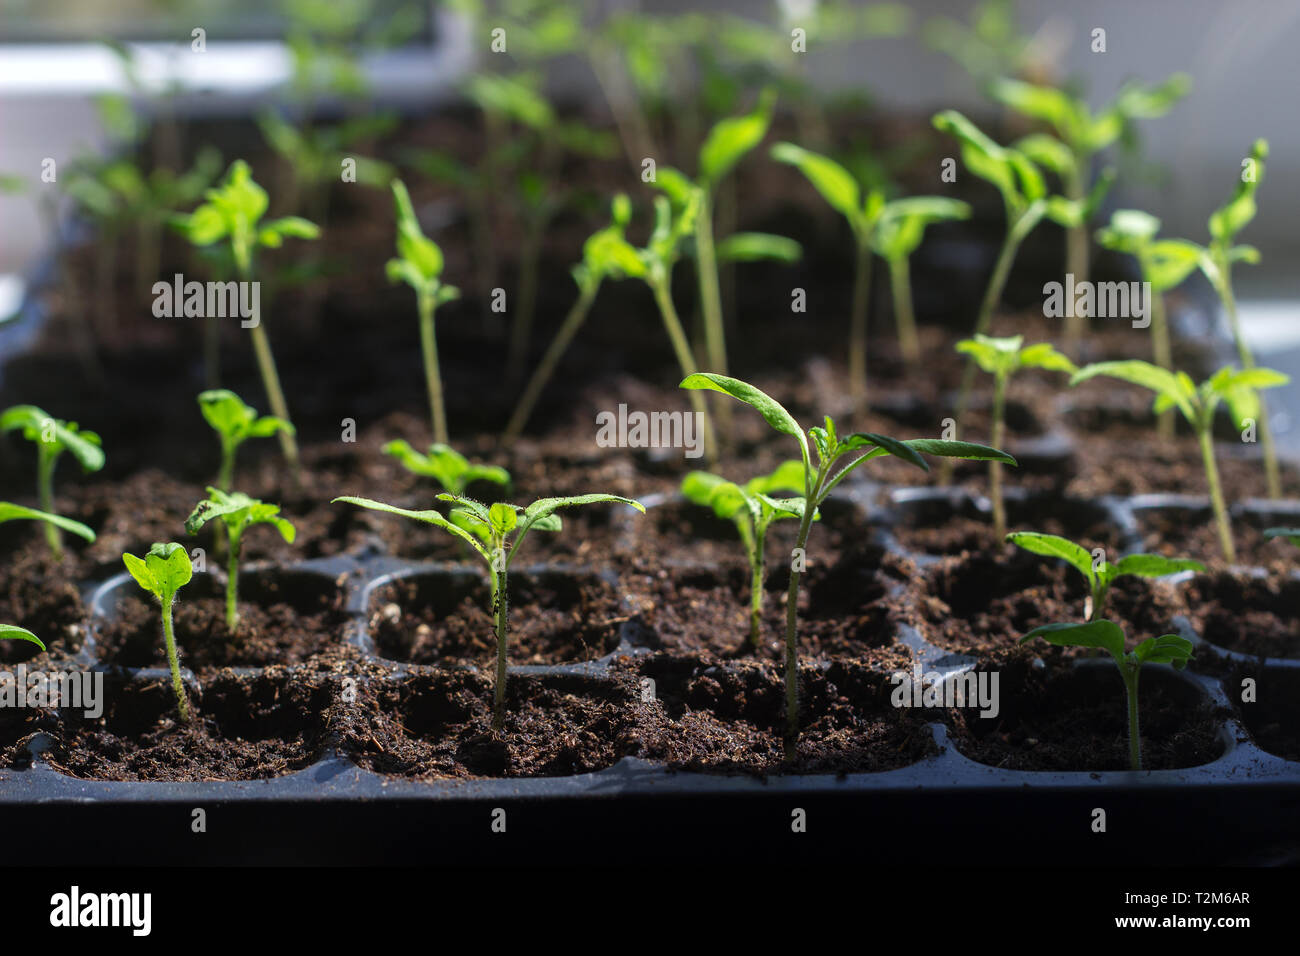 Tray with young tomato sprouts on the windowsill. Growing seedlings at home. Selective focus. Stock Photo